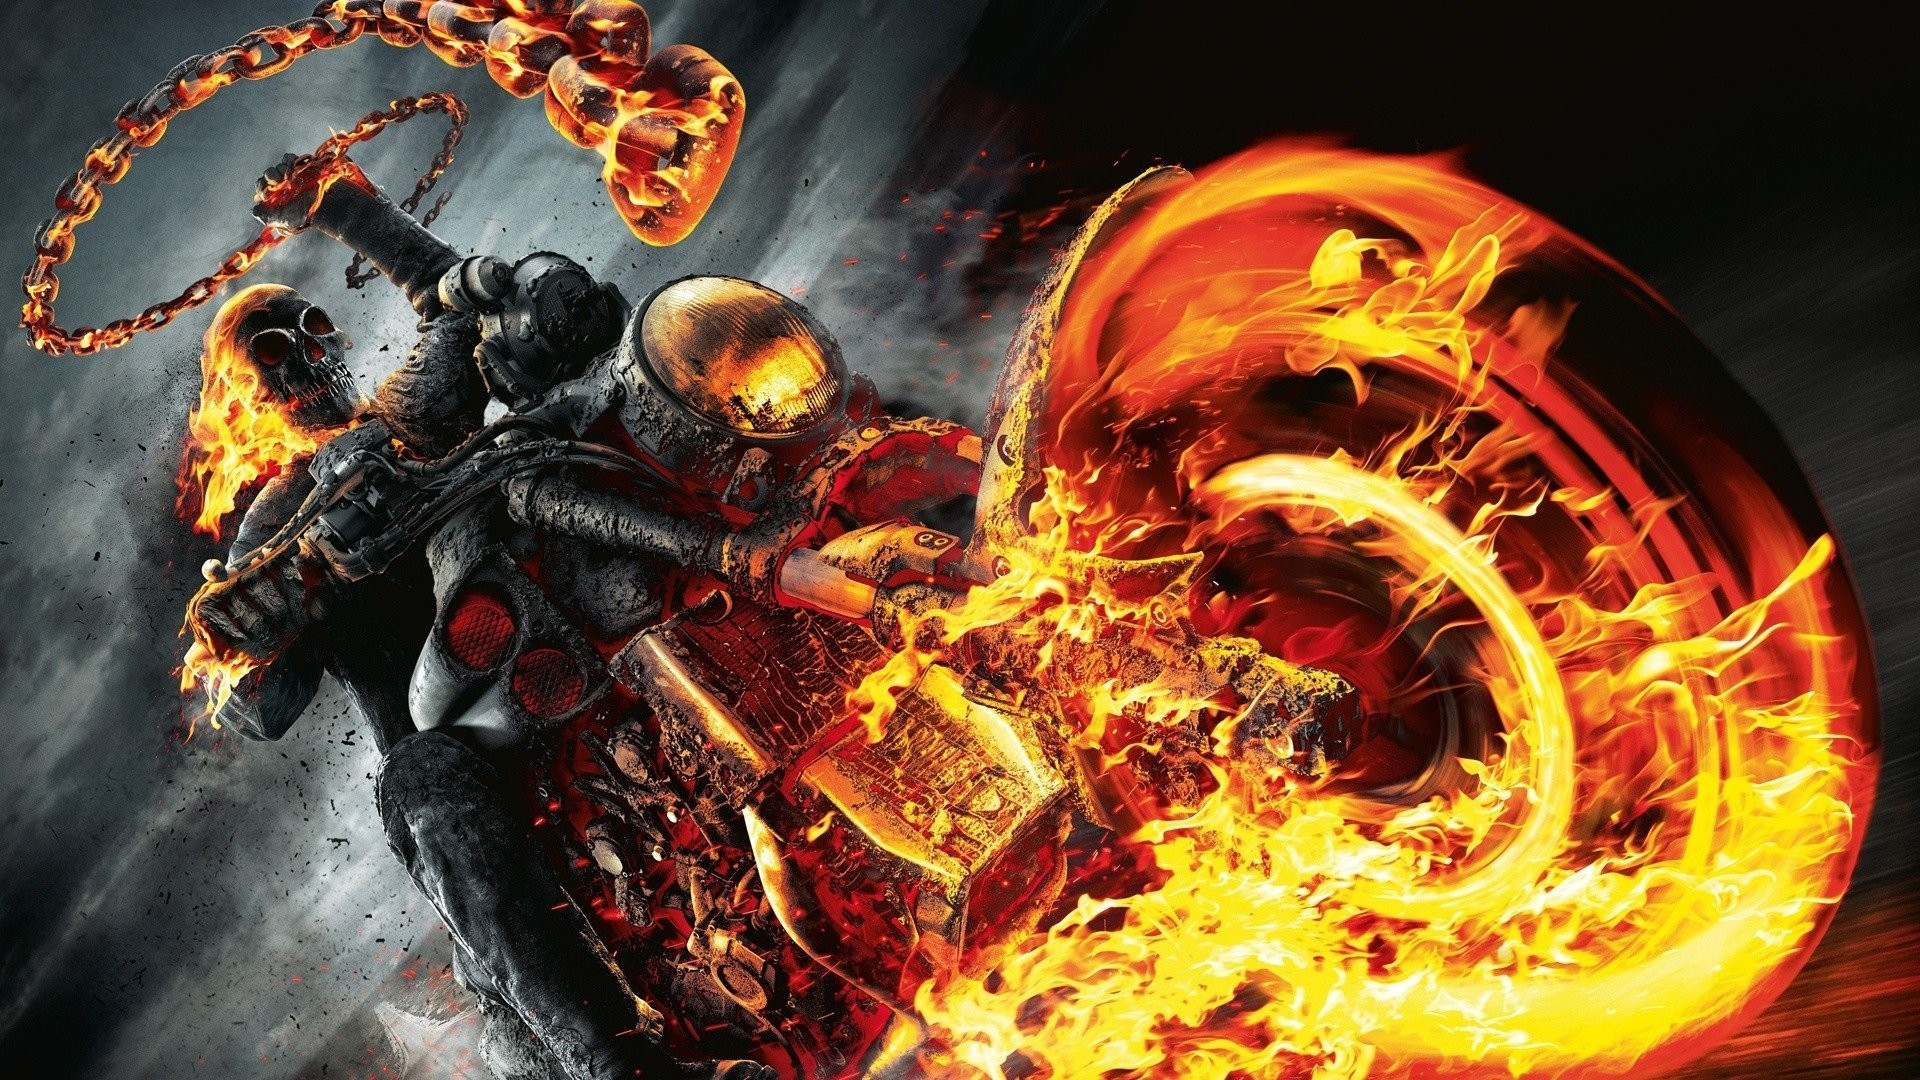 Ghost Rider Wallpaper ① Download Free Awesome Hd Backgrounds For